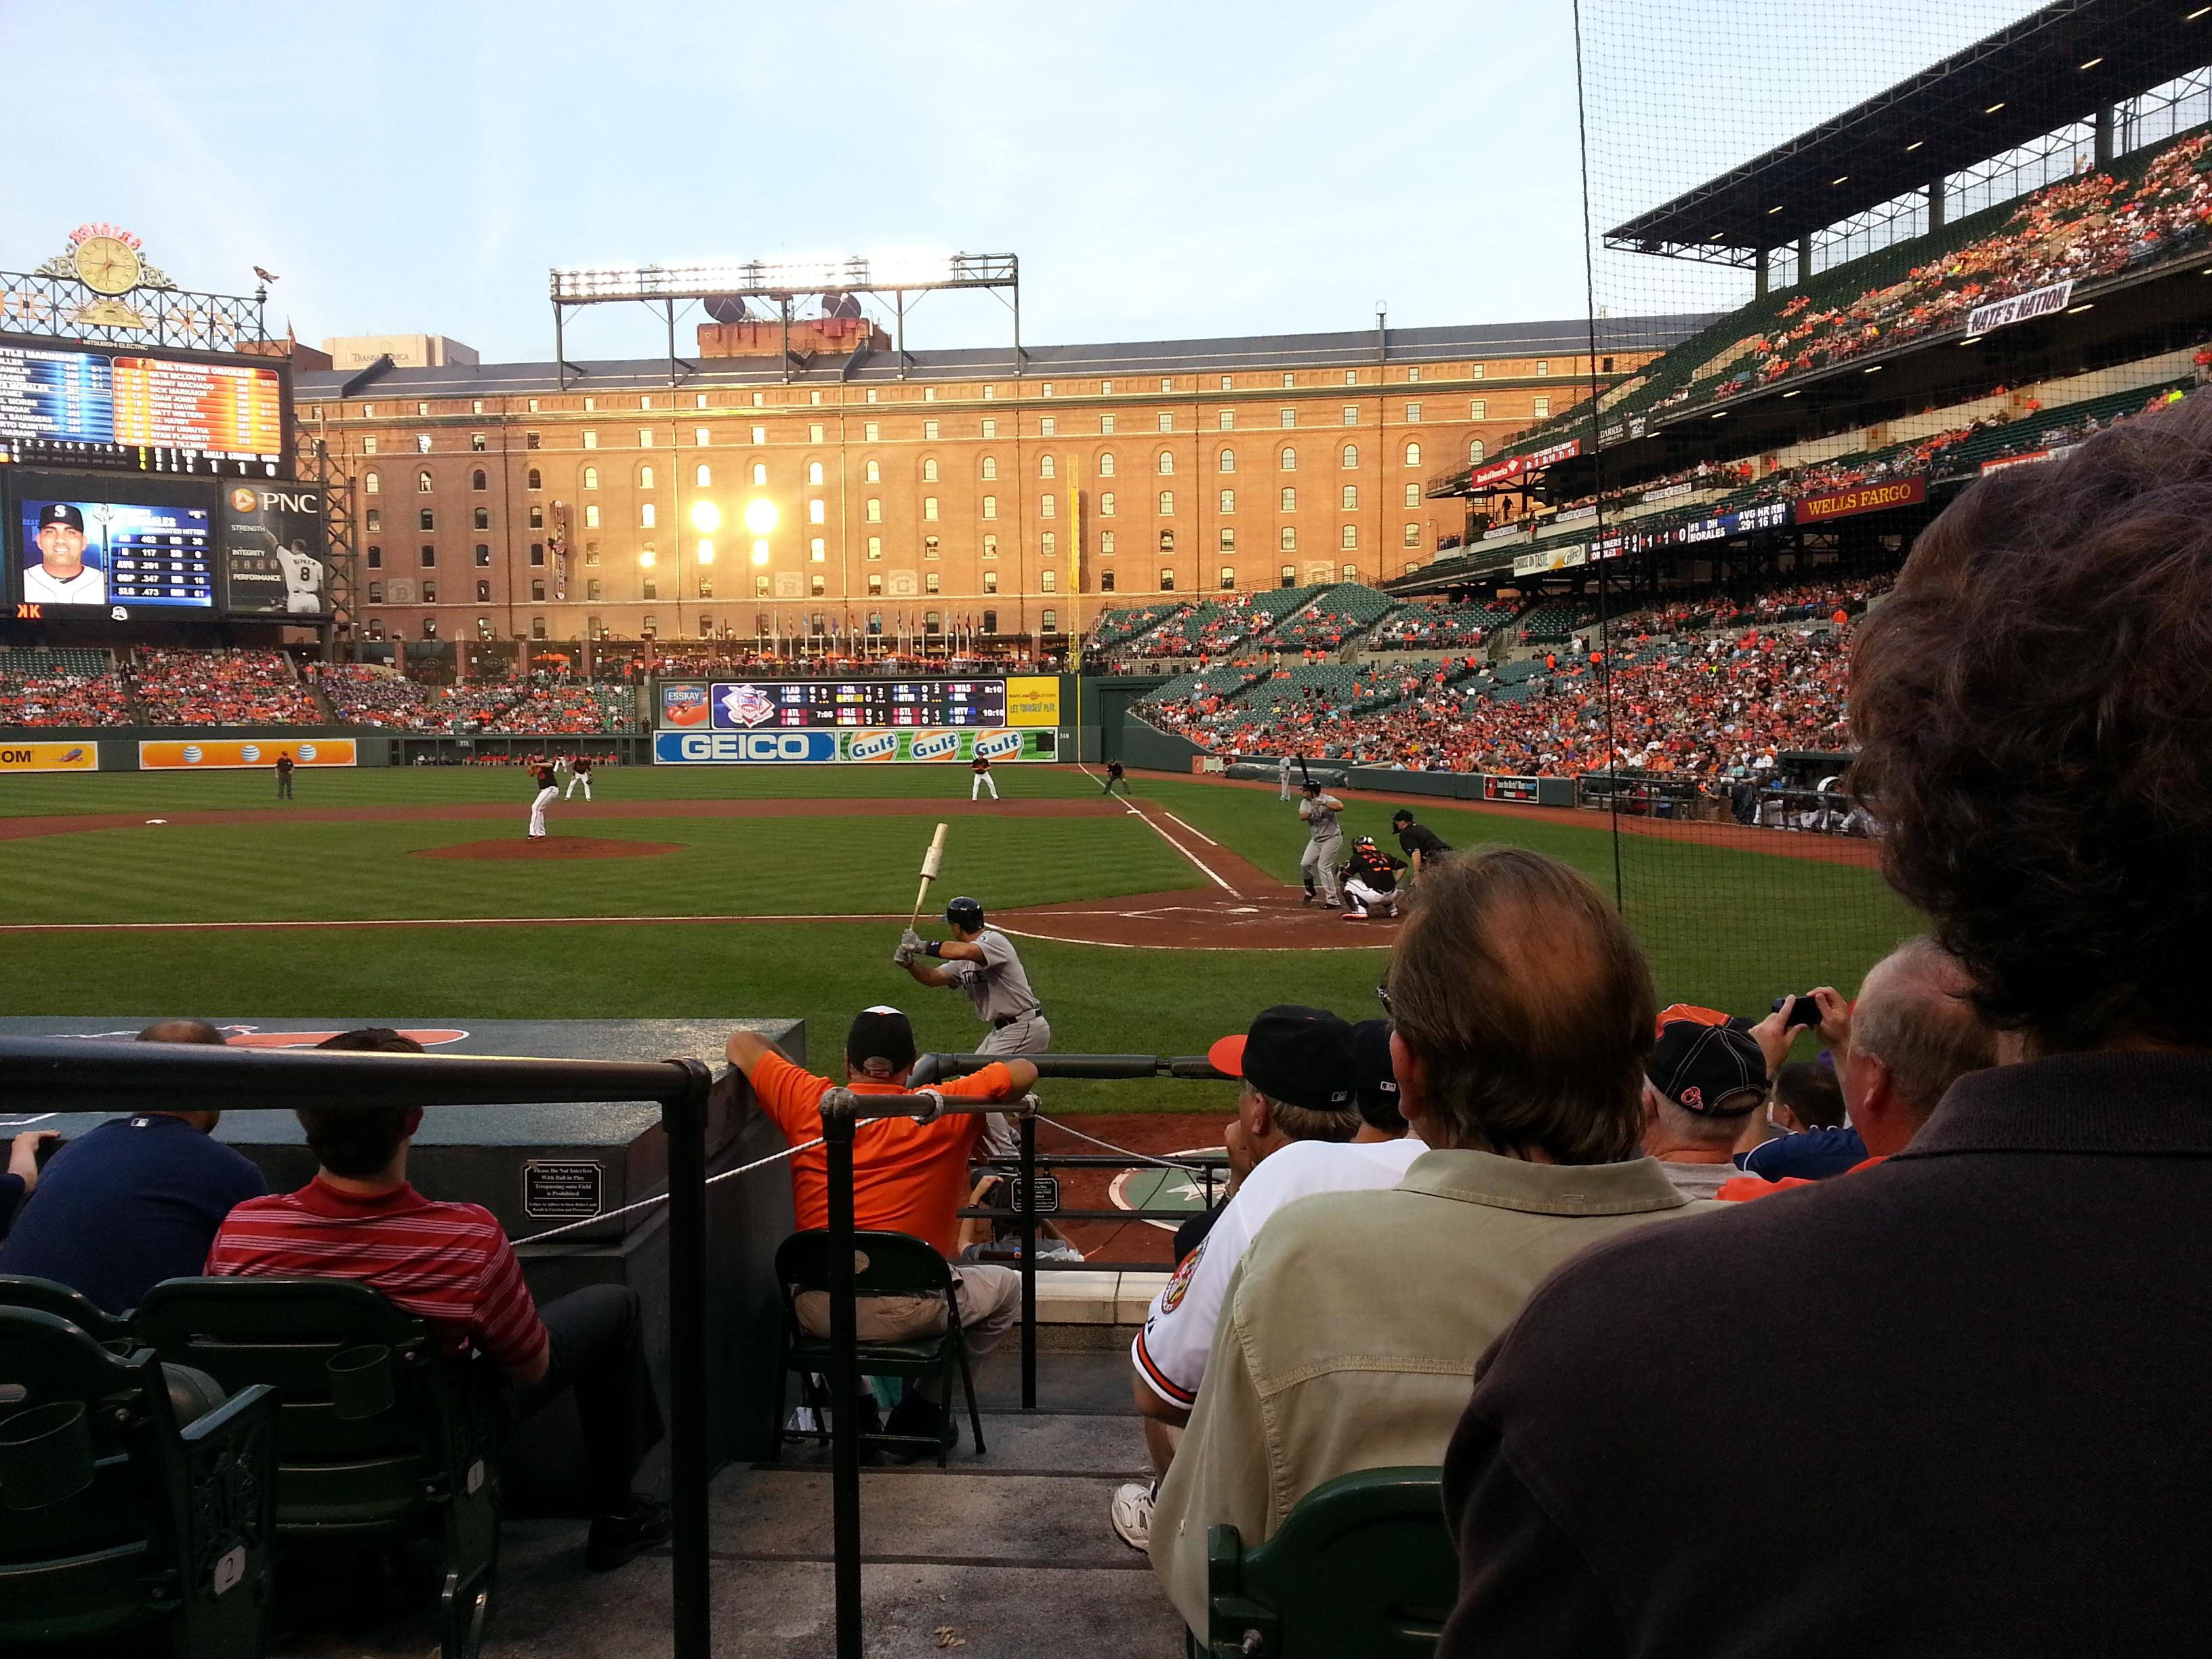 Oriole Park at Camden Yards Section 46 Row 8 Seat 6